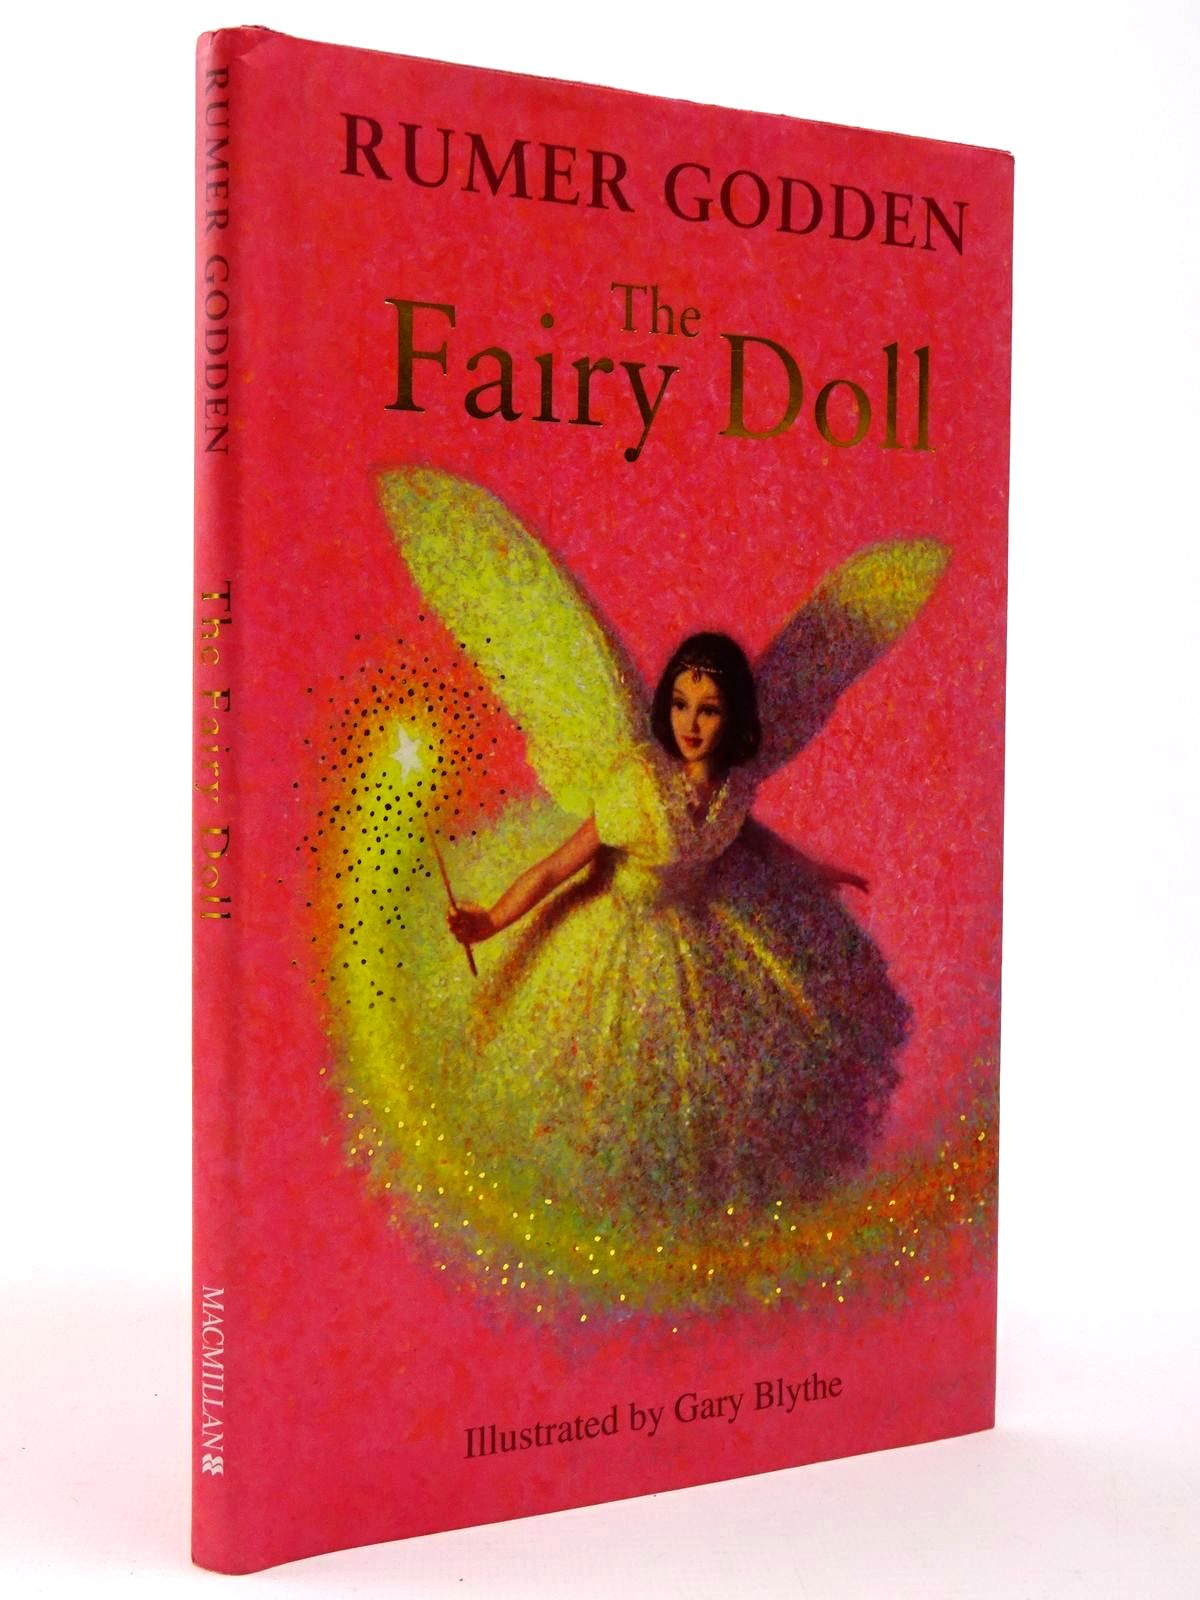 Photo of THE FAIRY DOLL written by Godden, Rumer illustrated by Blythe, Gary published by Macmillan Children's Books (STOCK CODE: 2129735)  for sale by Stella & Rose's Books